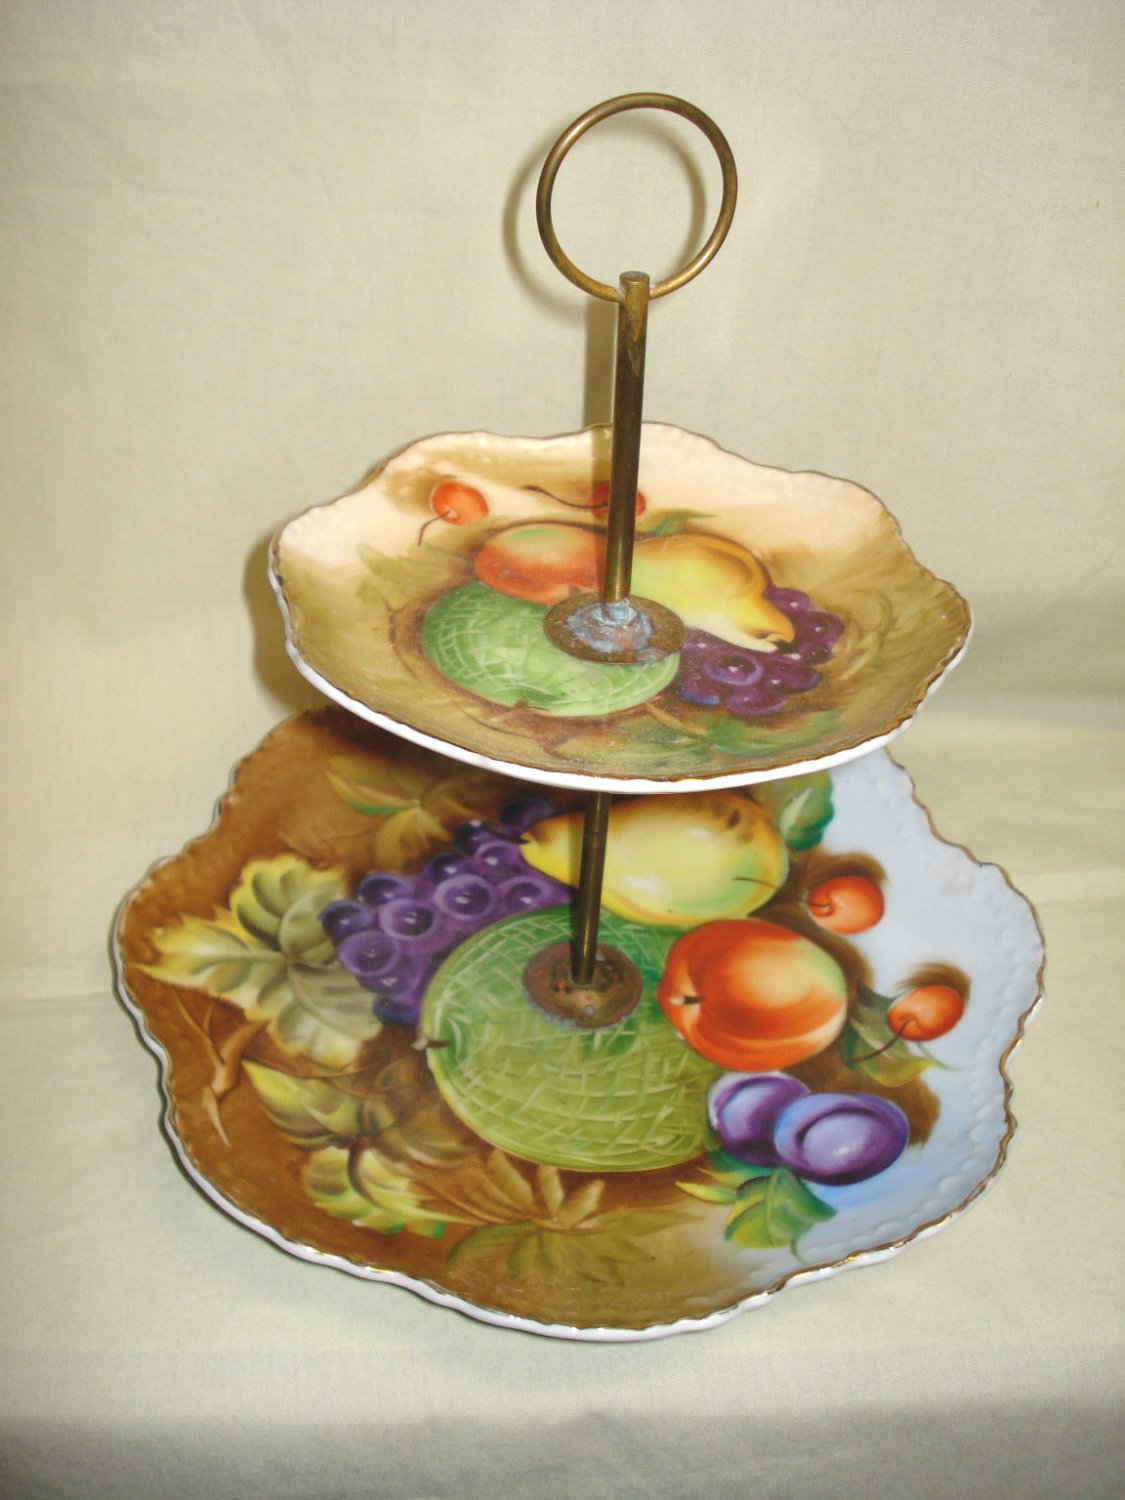 Lefton China Fruit Deco 2-Tier Handled Tid-Bit Tray